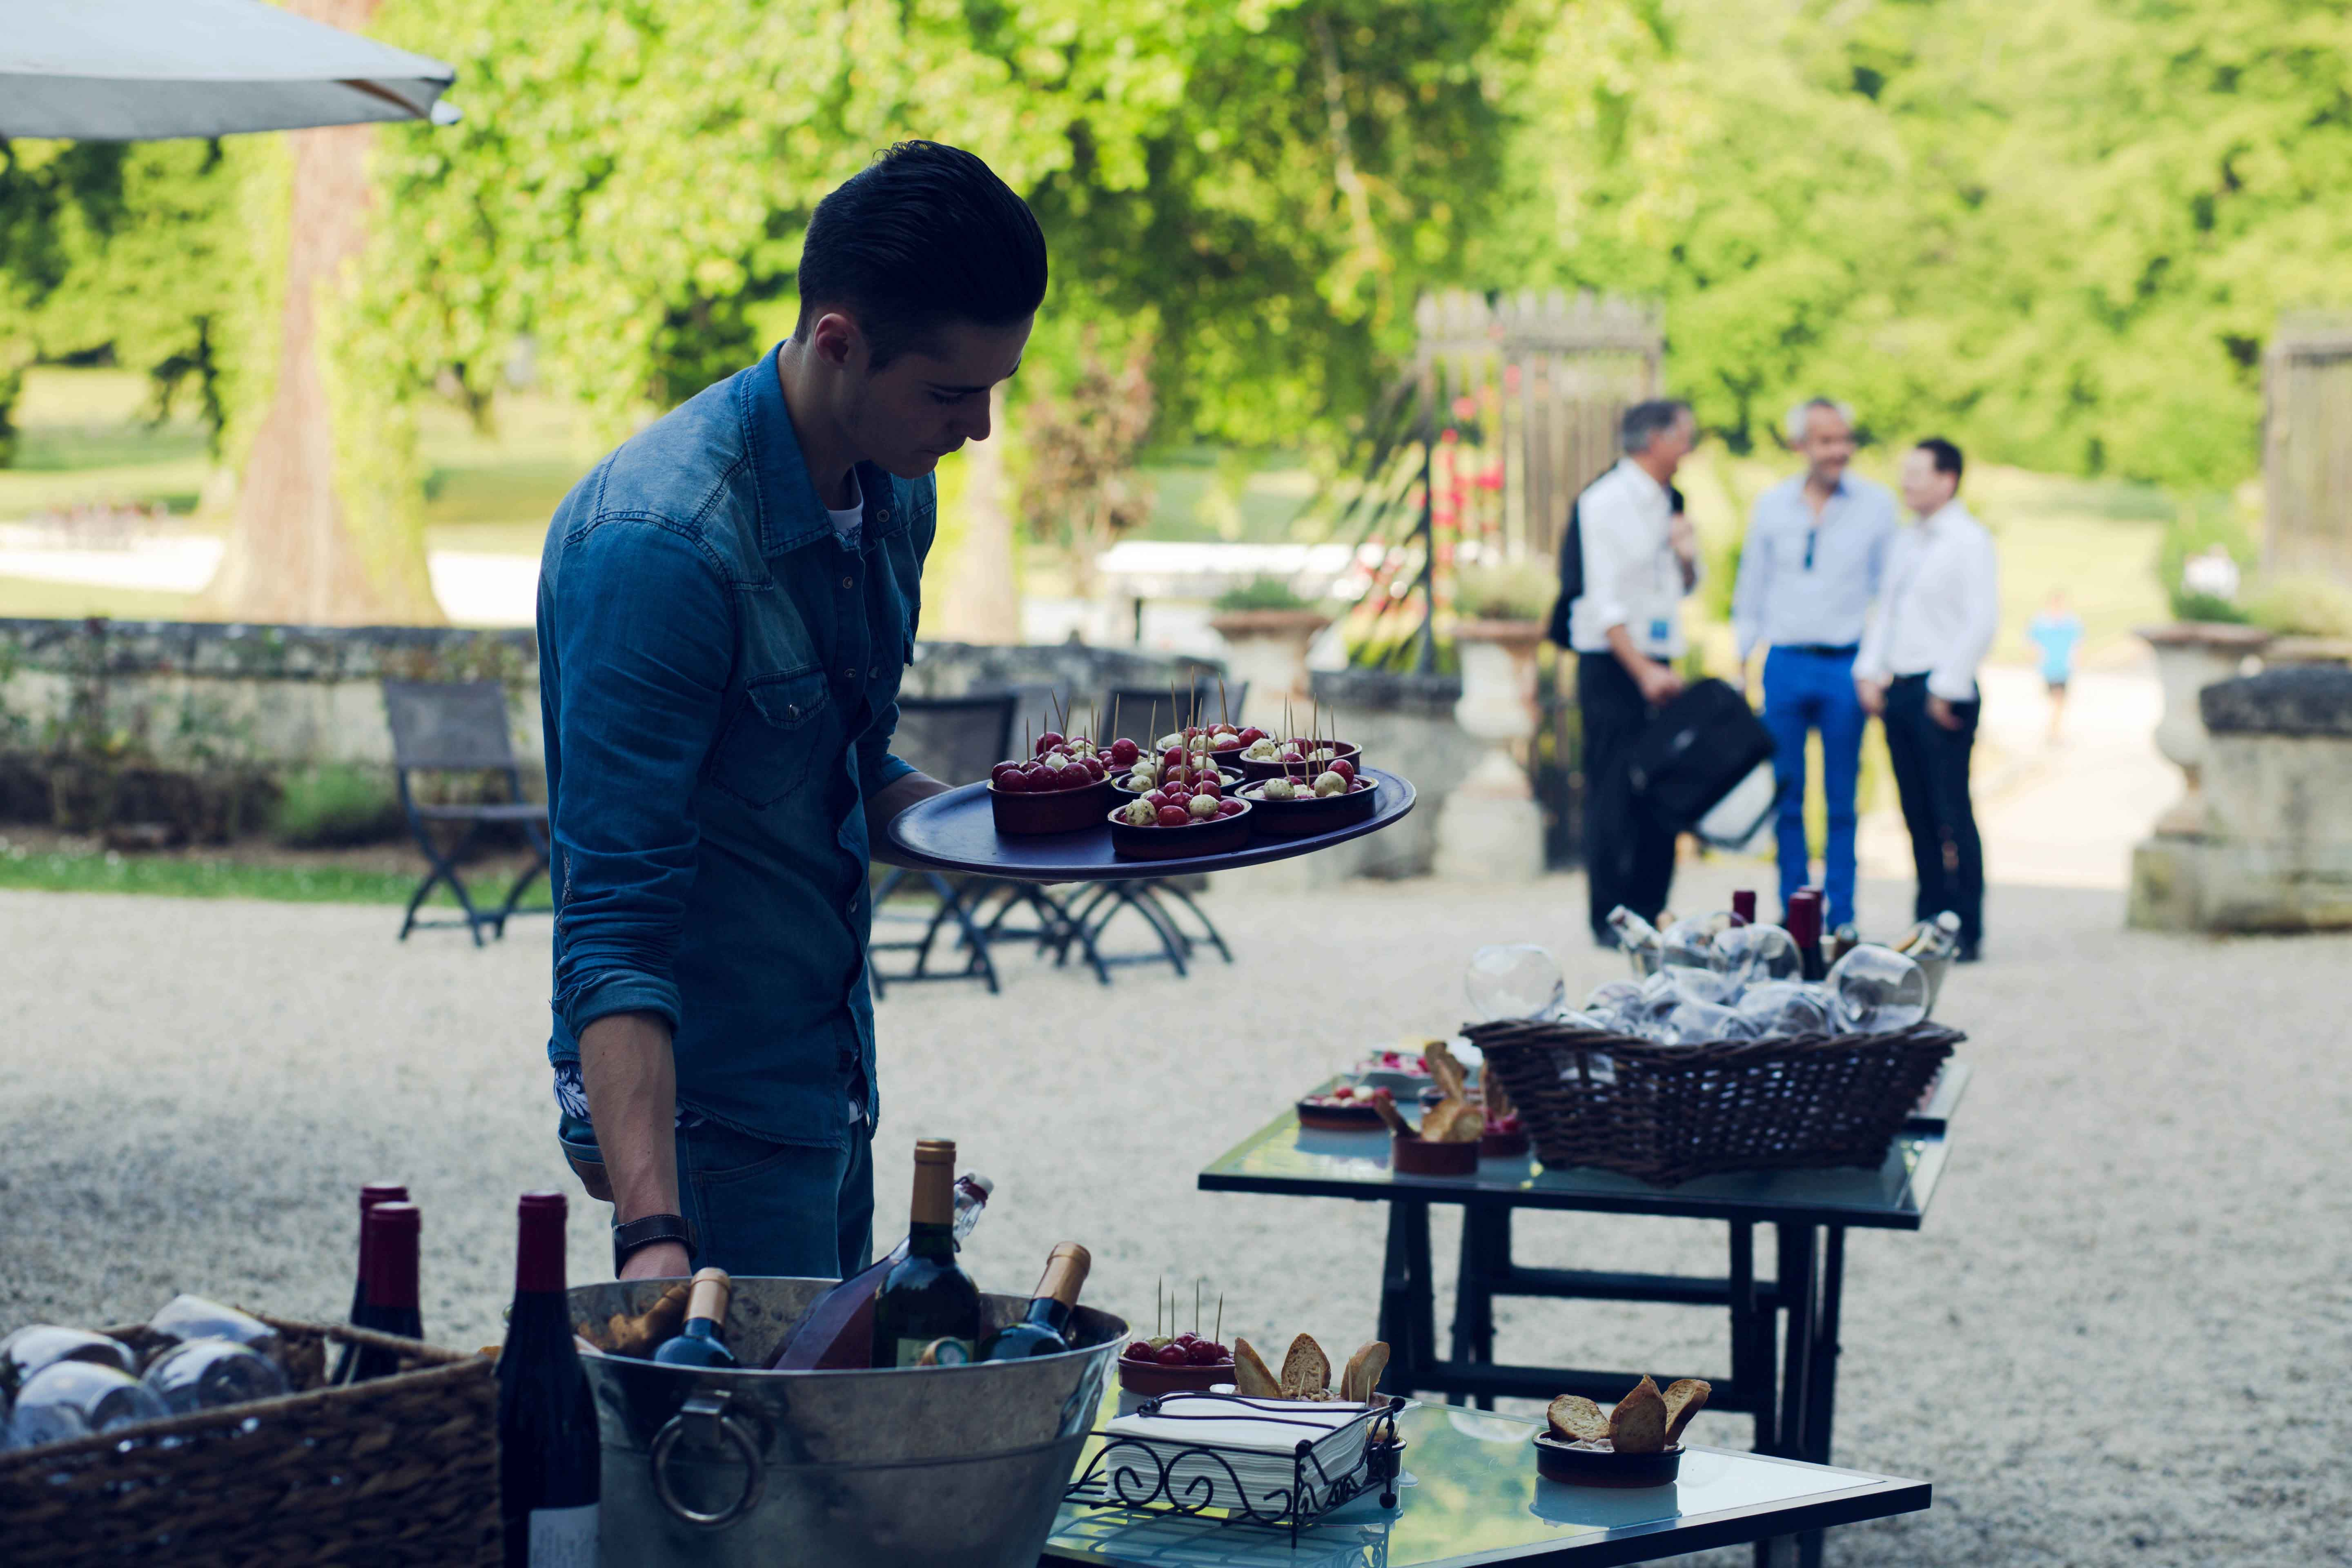 MGI World MGI Worldwide Europe Area Meeting 2015, Le Grand Mello, outdoors lunch buffet image 3